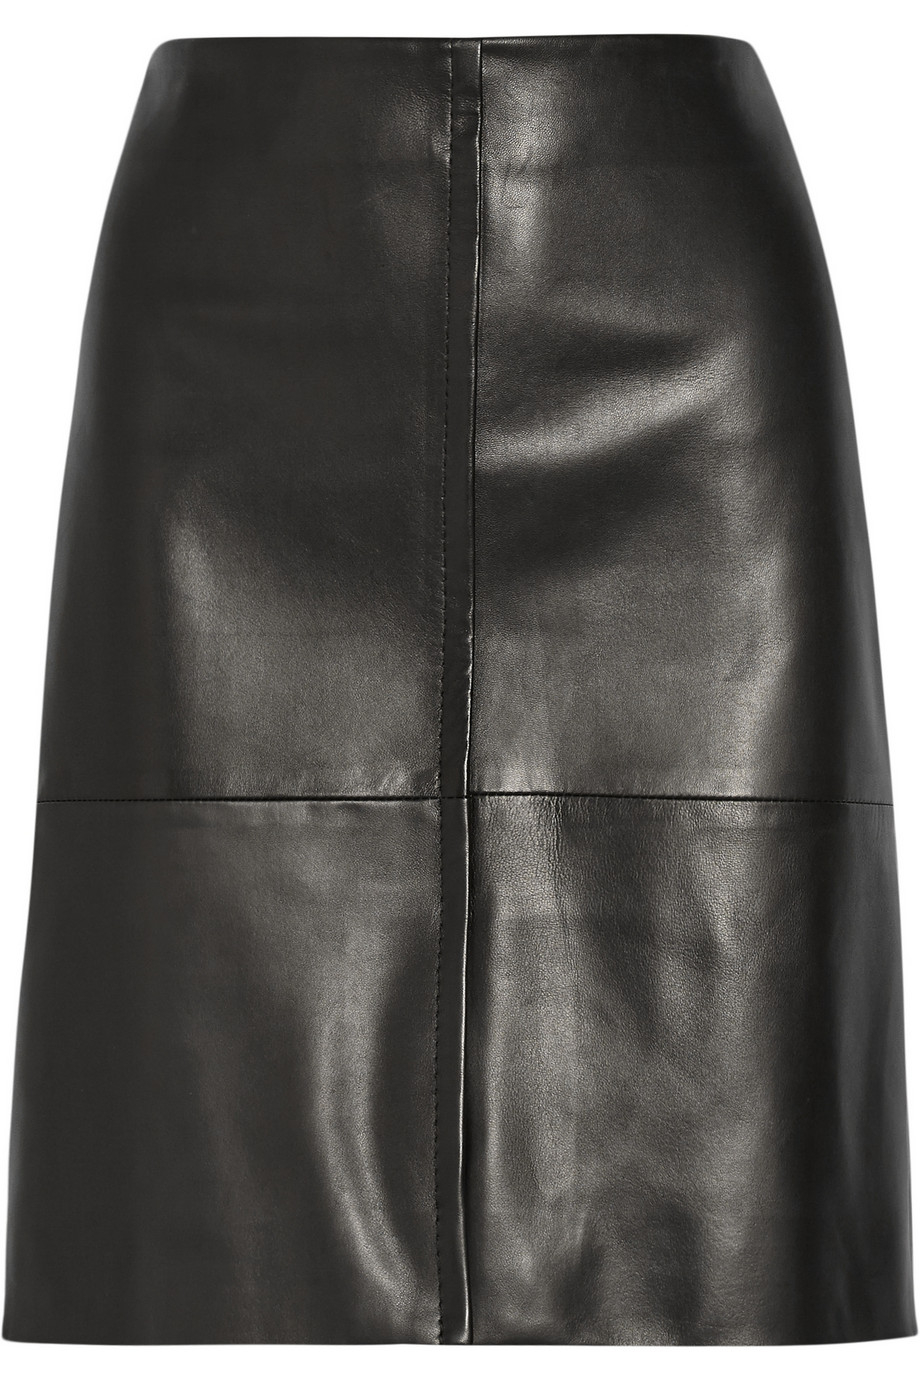 the row curlan paneled leather skirt in black lyst